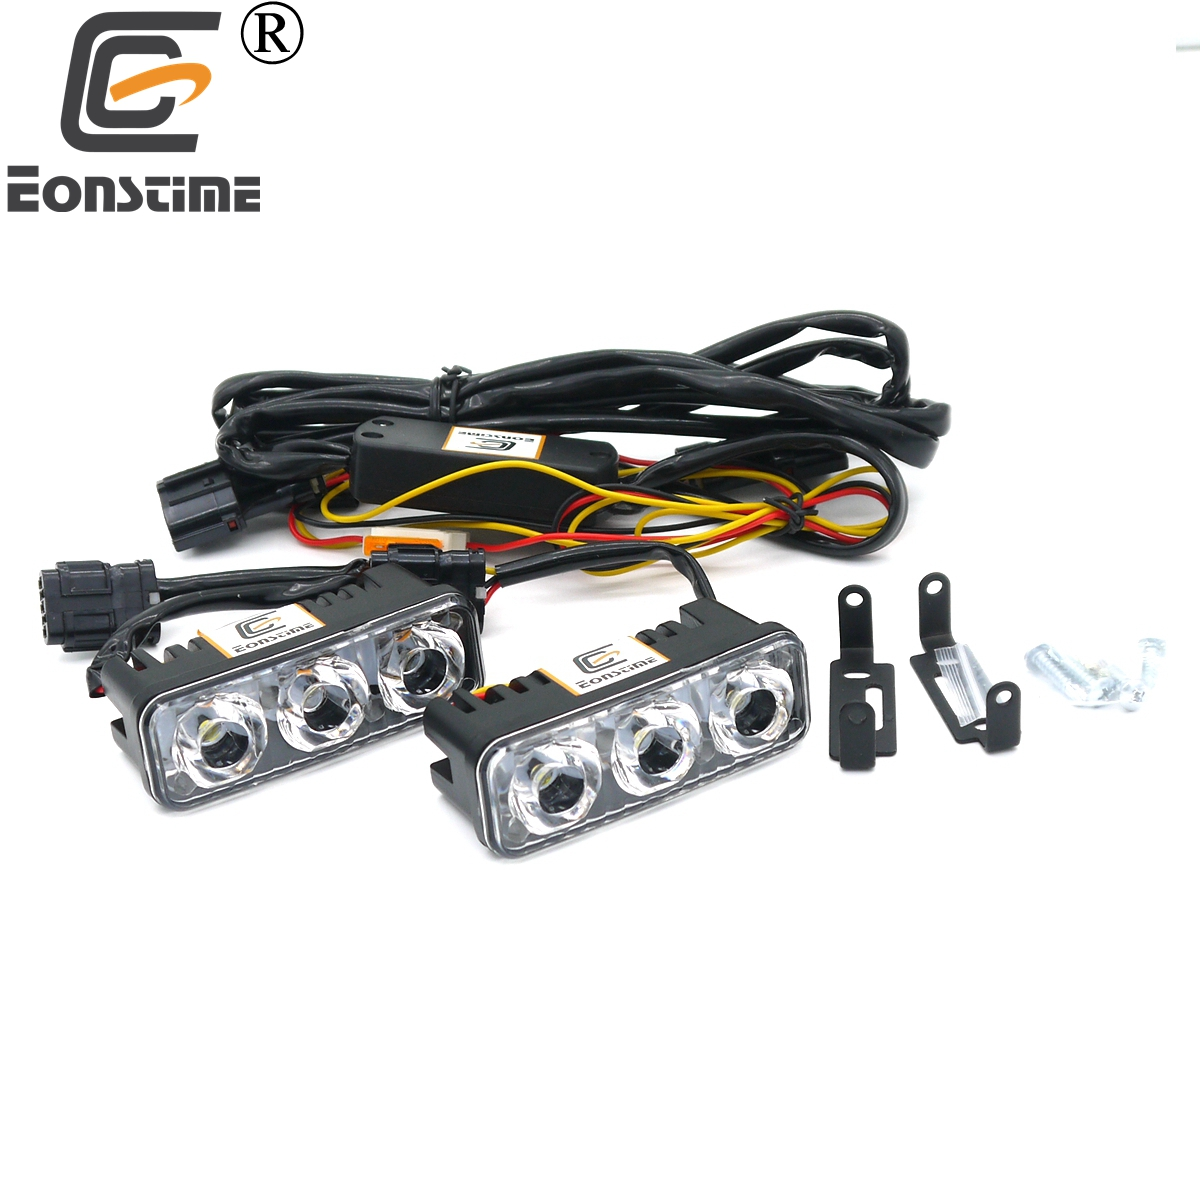 Eonstime DC12V/24V Waterproof Car Auto High Power Aluminum LED Daytime Running Lights with Lens 6000K DRL Fog Lamps Turn Signal high quality h3 led 20w led projector high power white car auto drl daytime running lights headlight fog lamp bulb dc12v